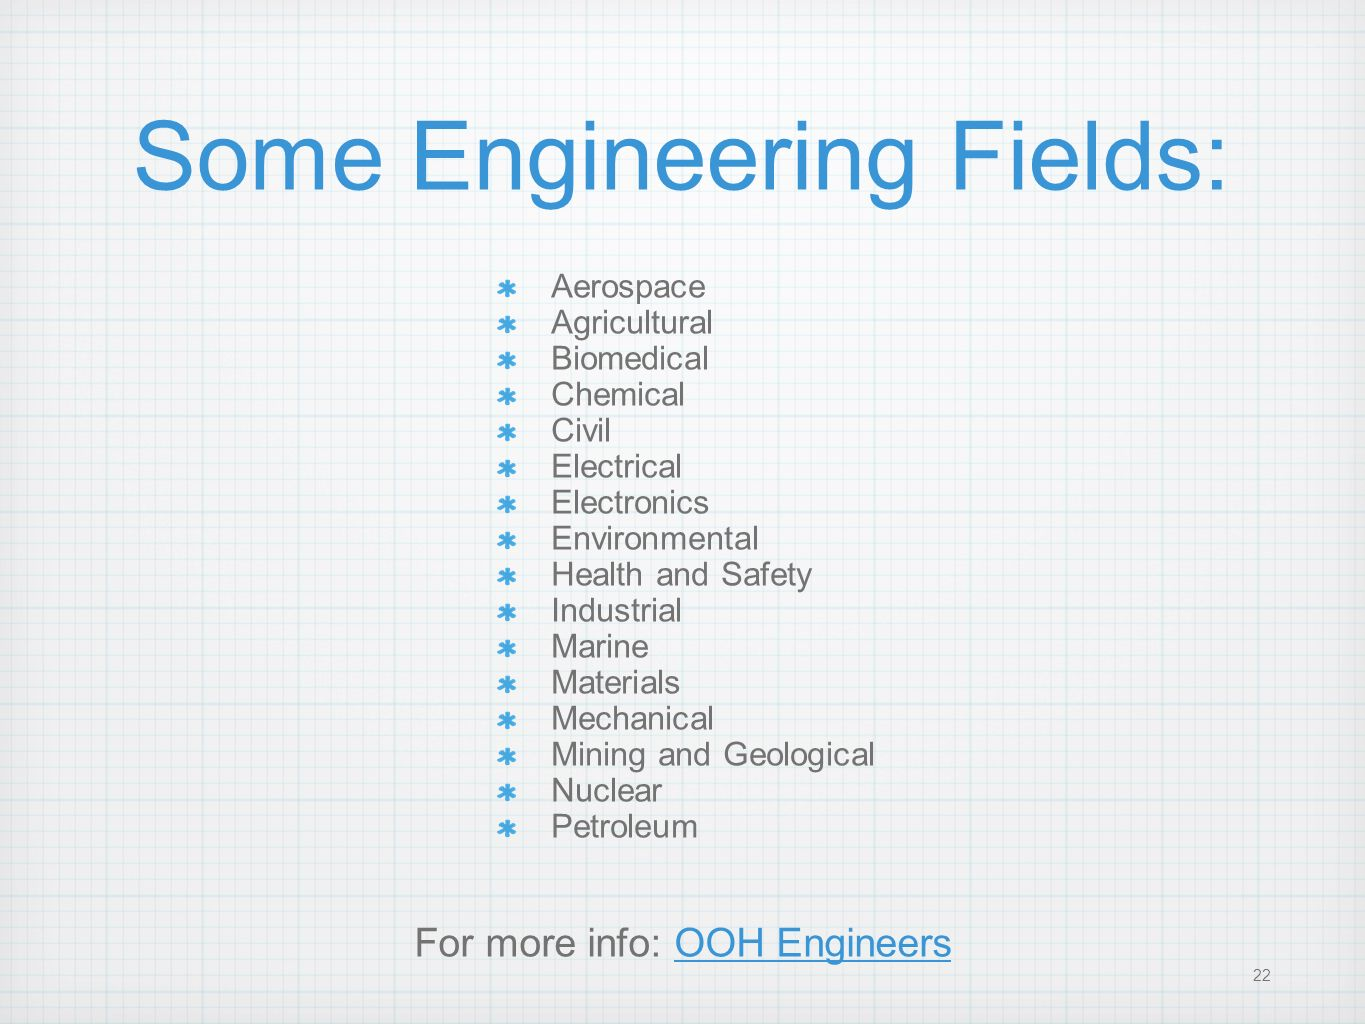 Some Engineering Fields: